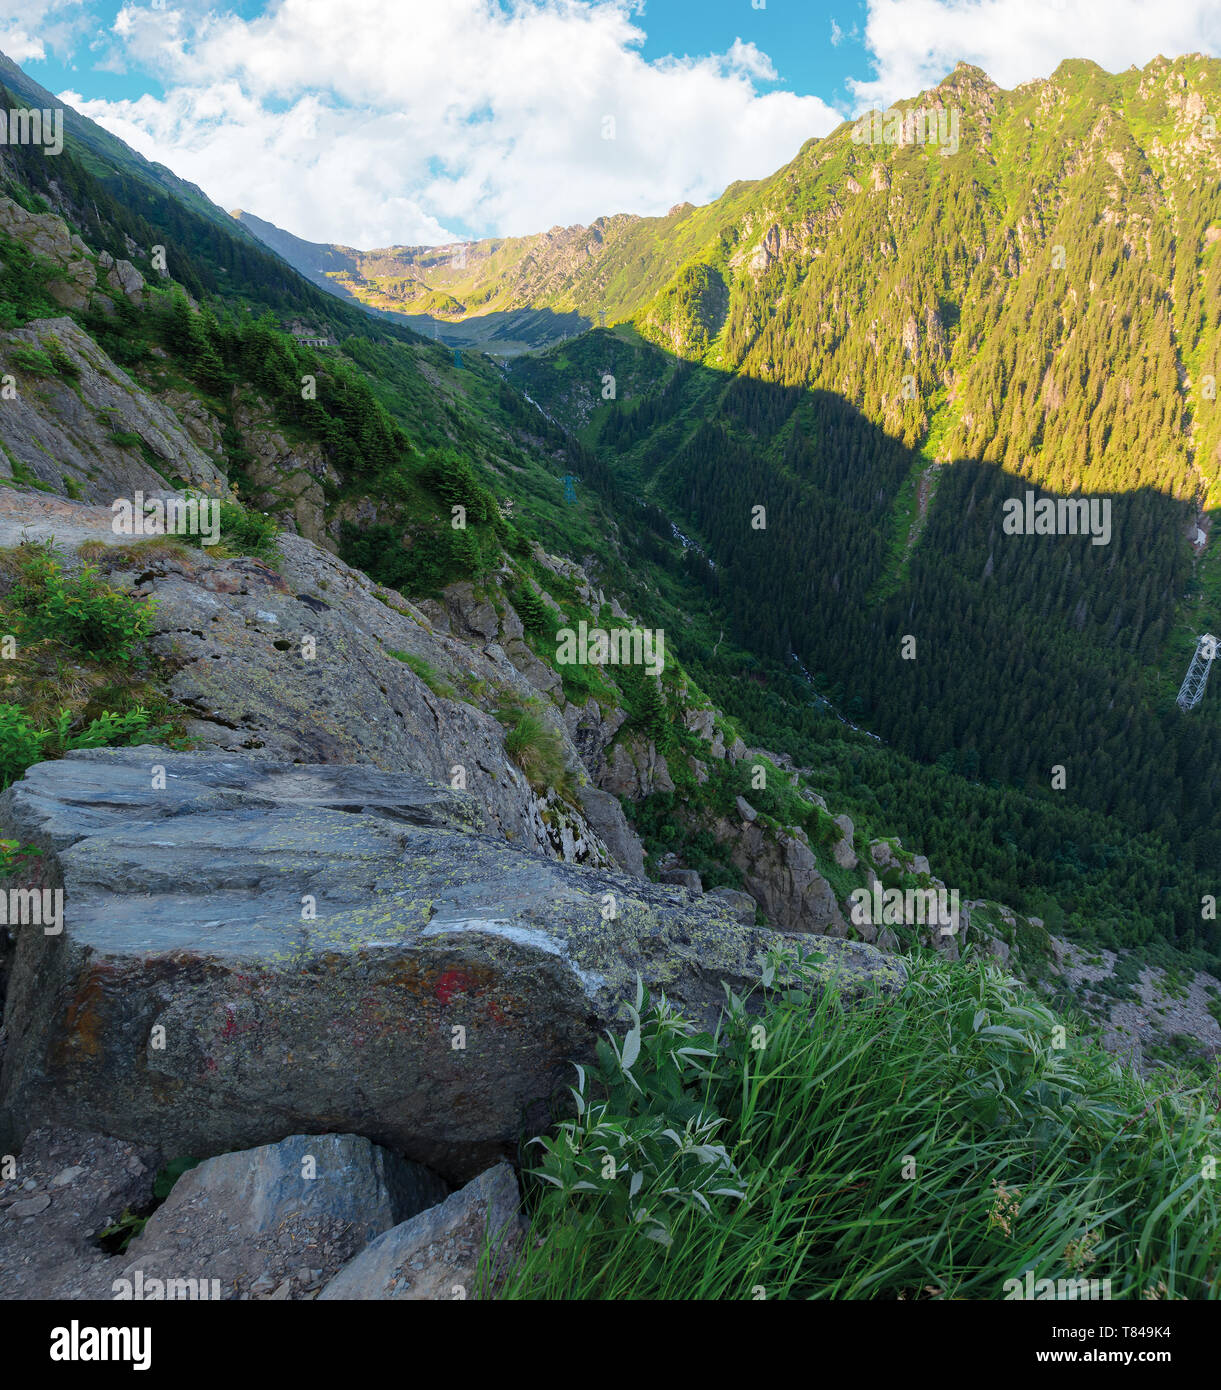 valley of the balea stream in fagaras mountains. view from the rocky cliff on a steep slope. forested hillside in the distance. popular travel destina - Stock Image